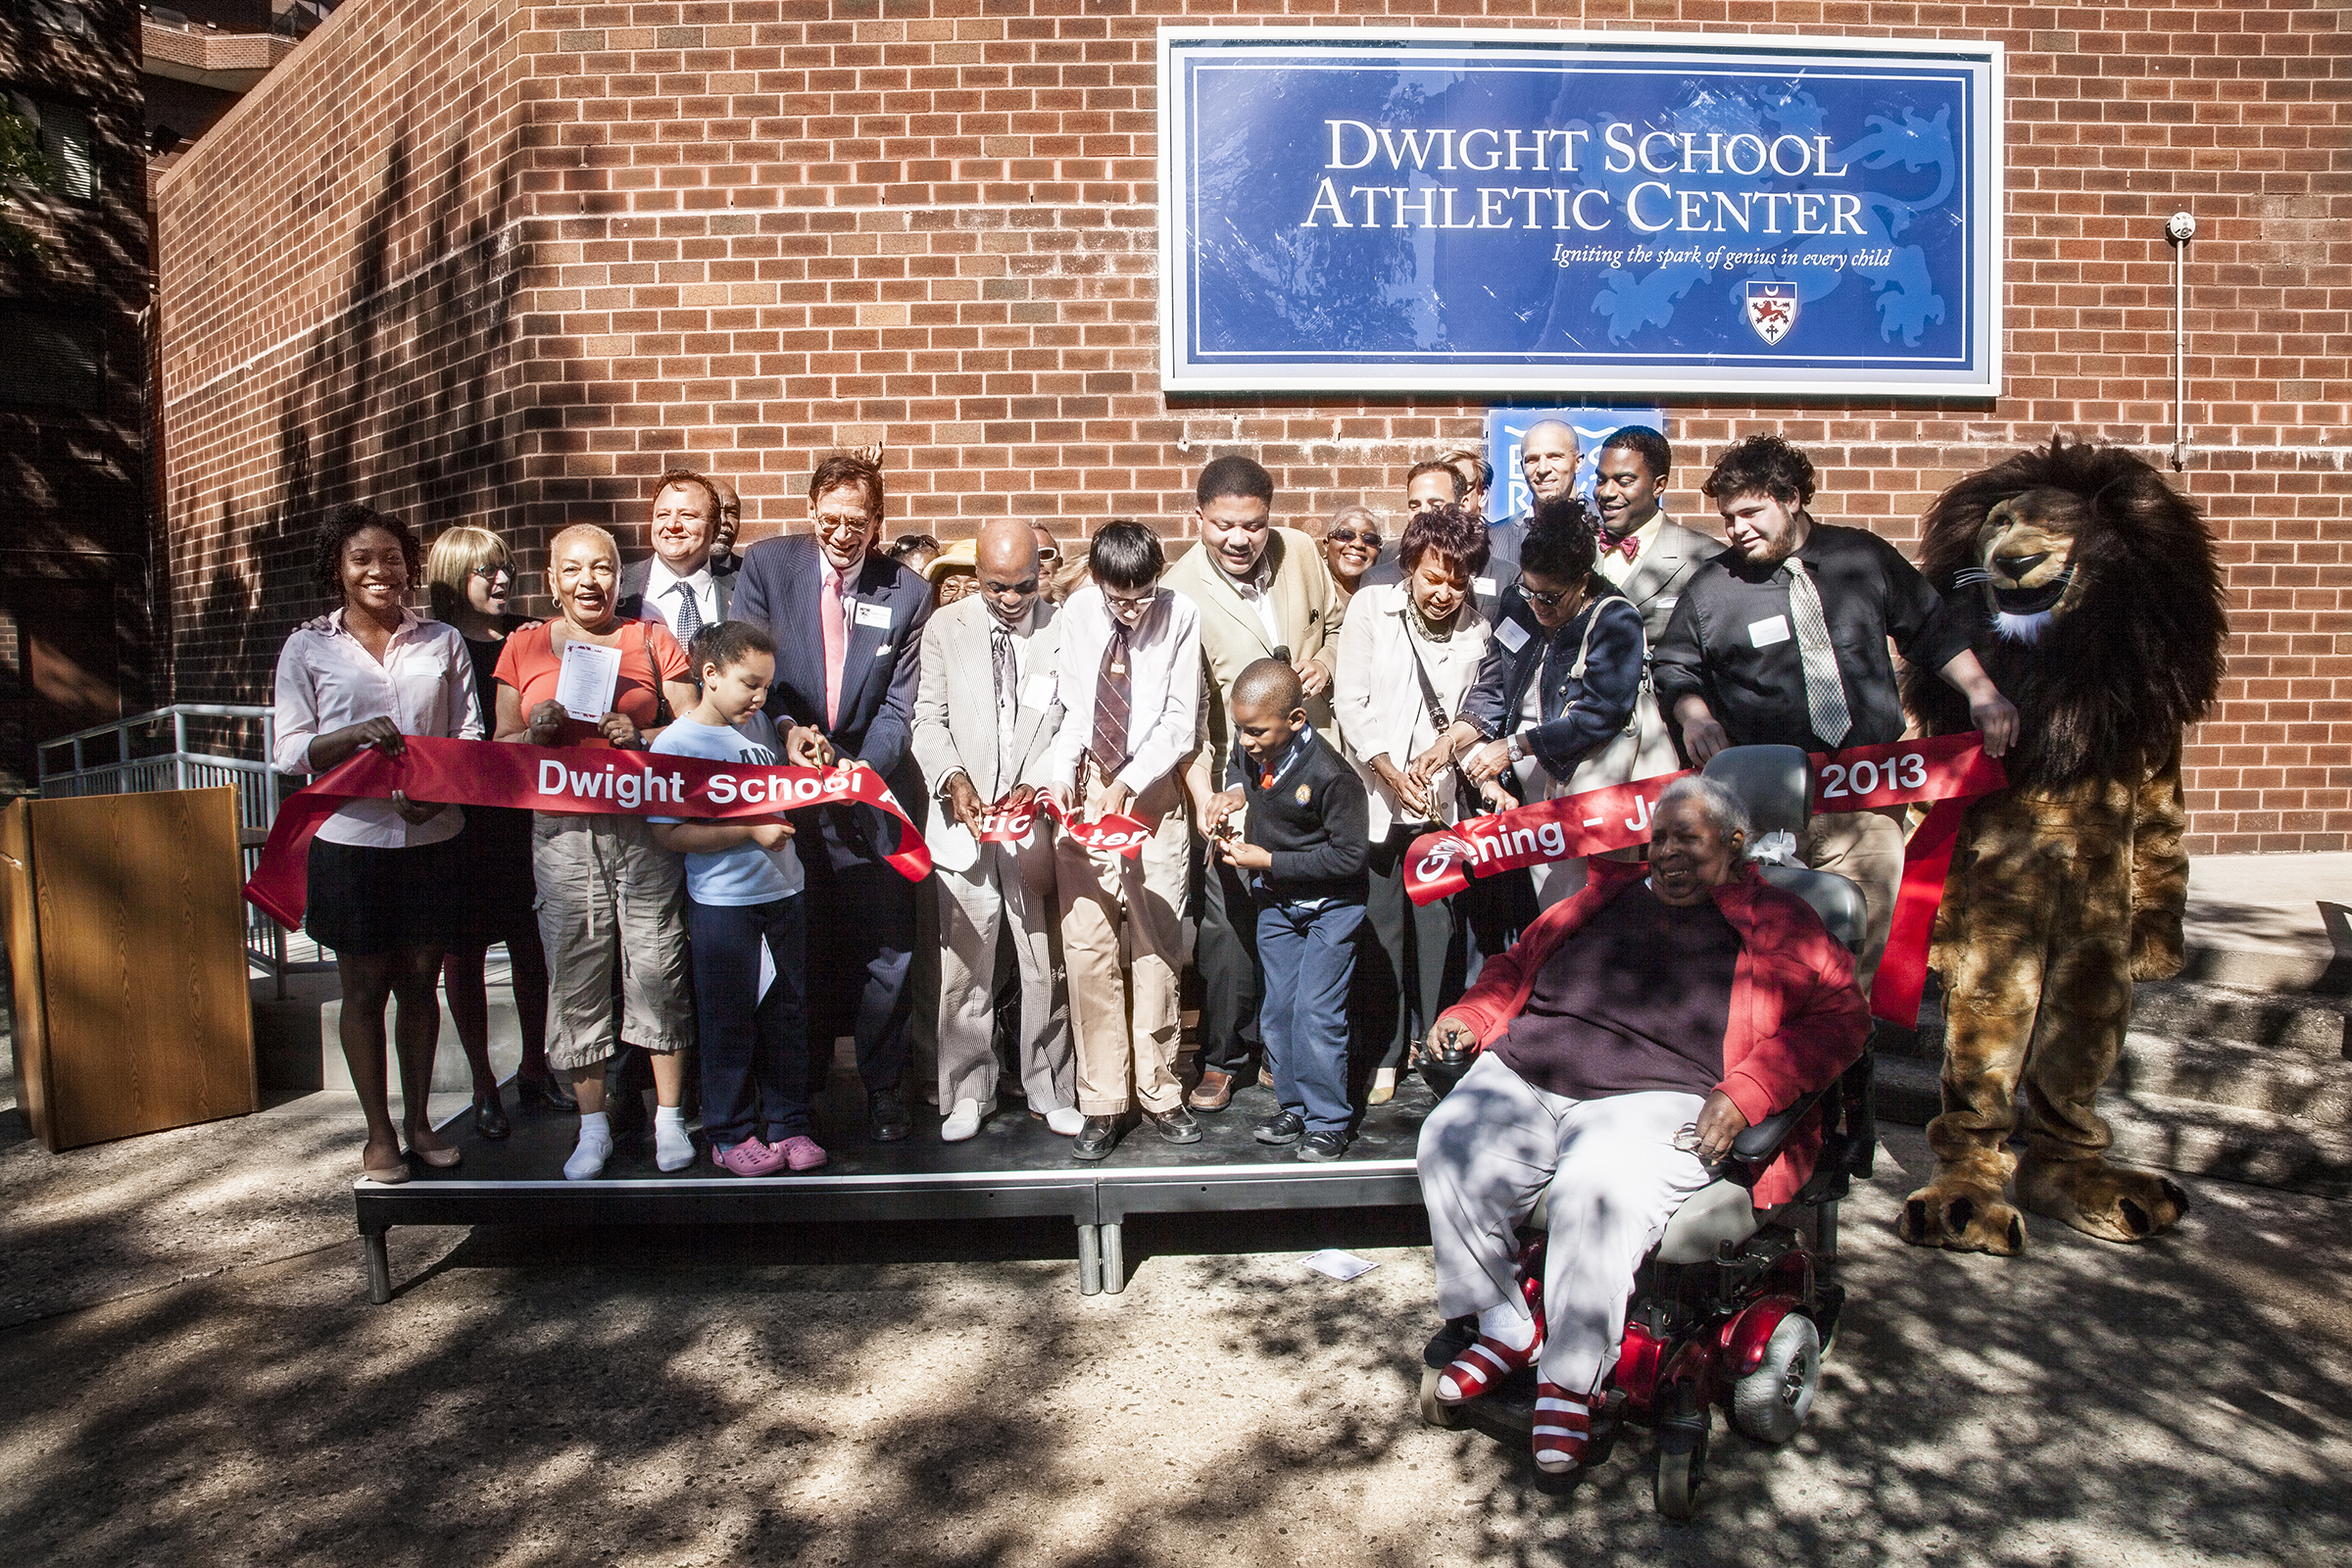 Opening Ceremony at New Dwight Athletic Center